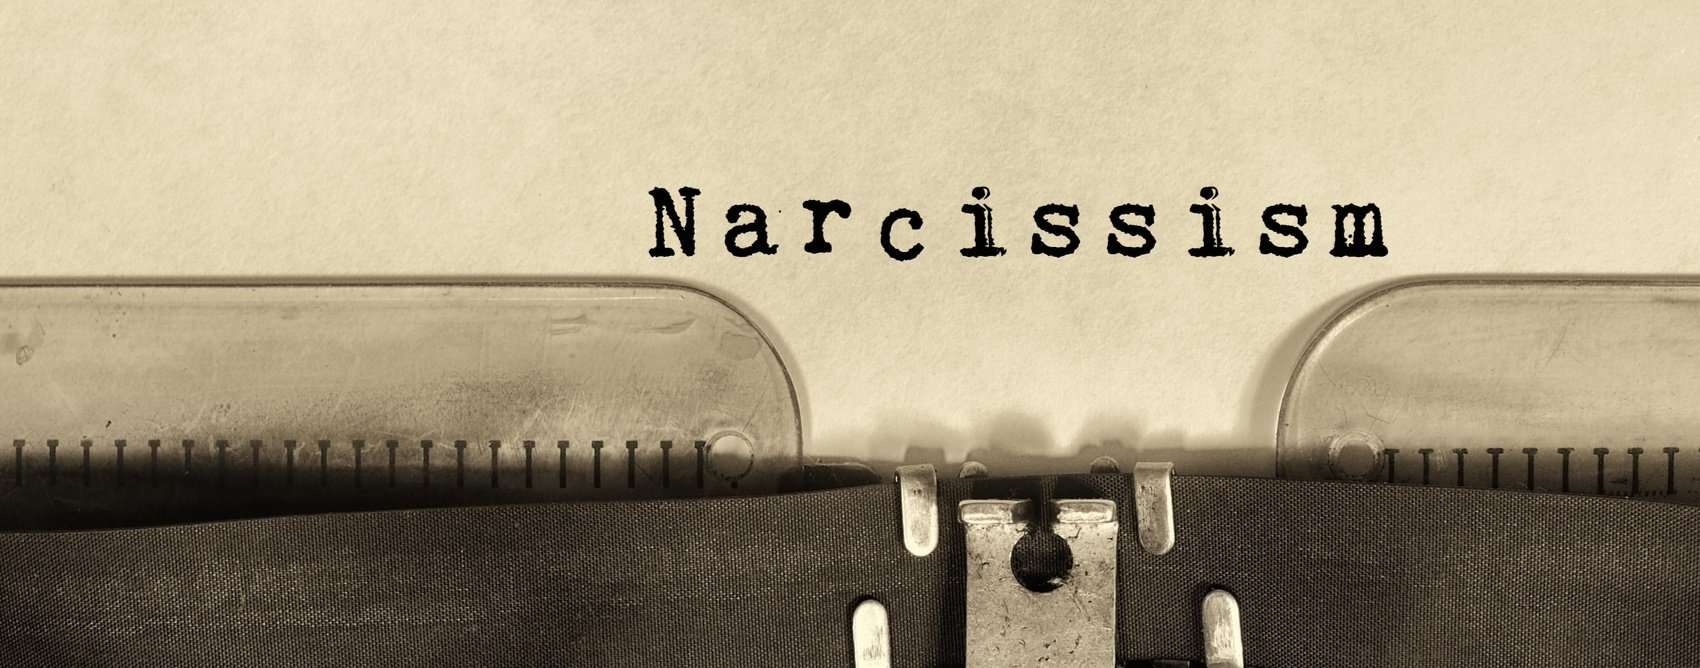 Do You Have a Narcissist Personality? Here's a Checklist